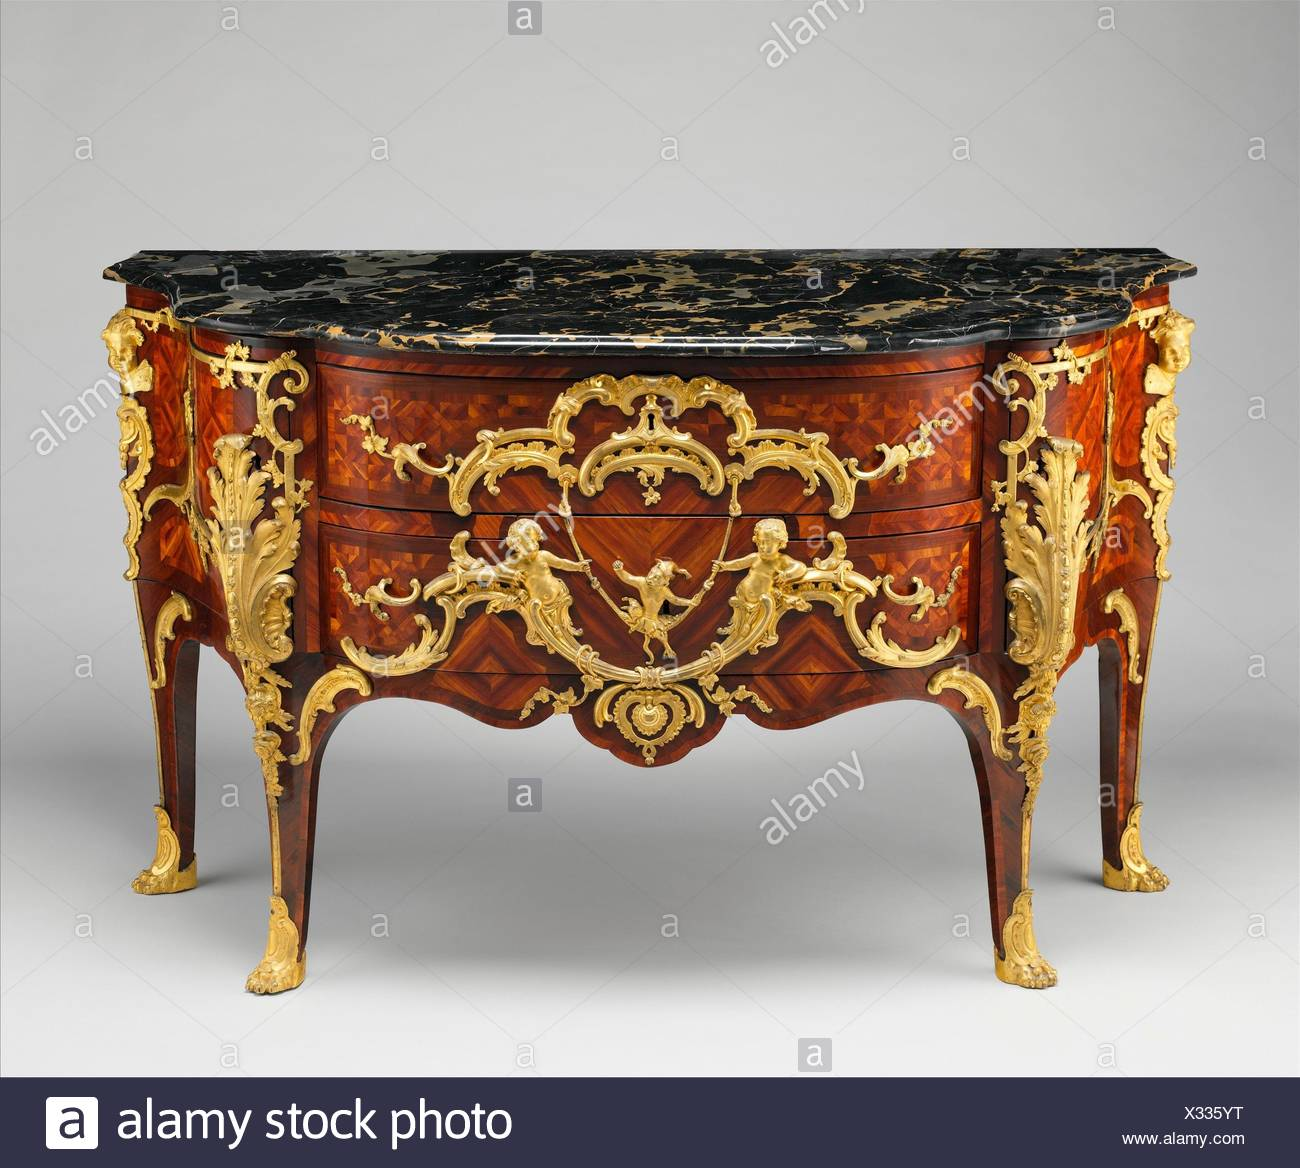 Commode. Maker: Charles Cressent (French, Amiens 1685-1768 Paris); Date: ca. 1745-49; Culture: French, Paris; Medium: Pine and oak veneered with - Stock Image